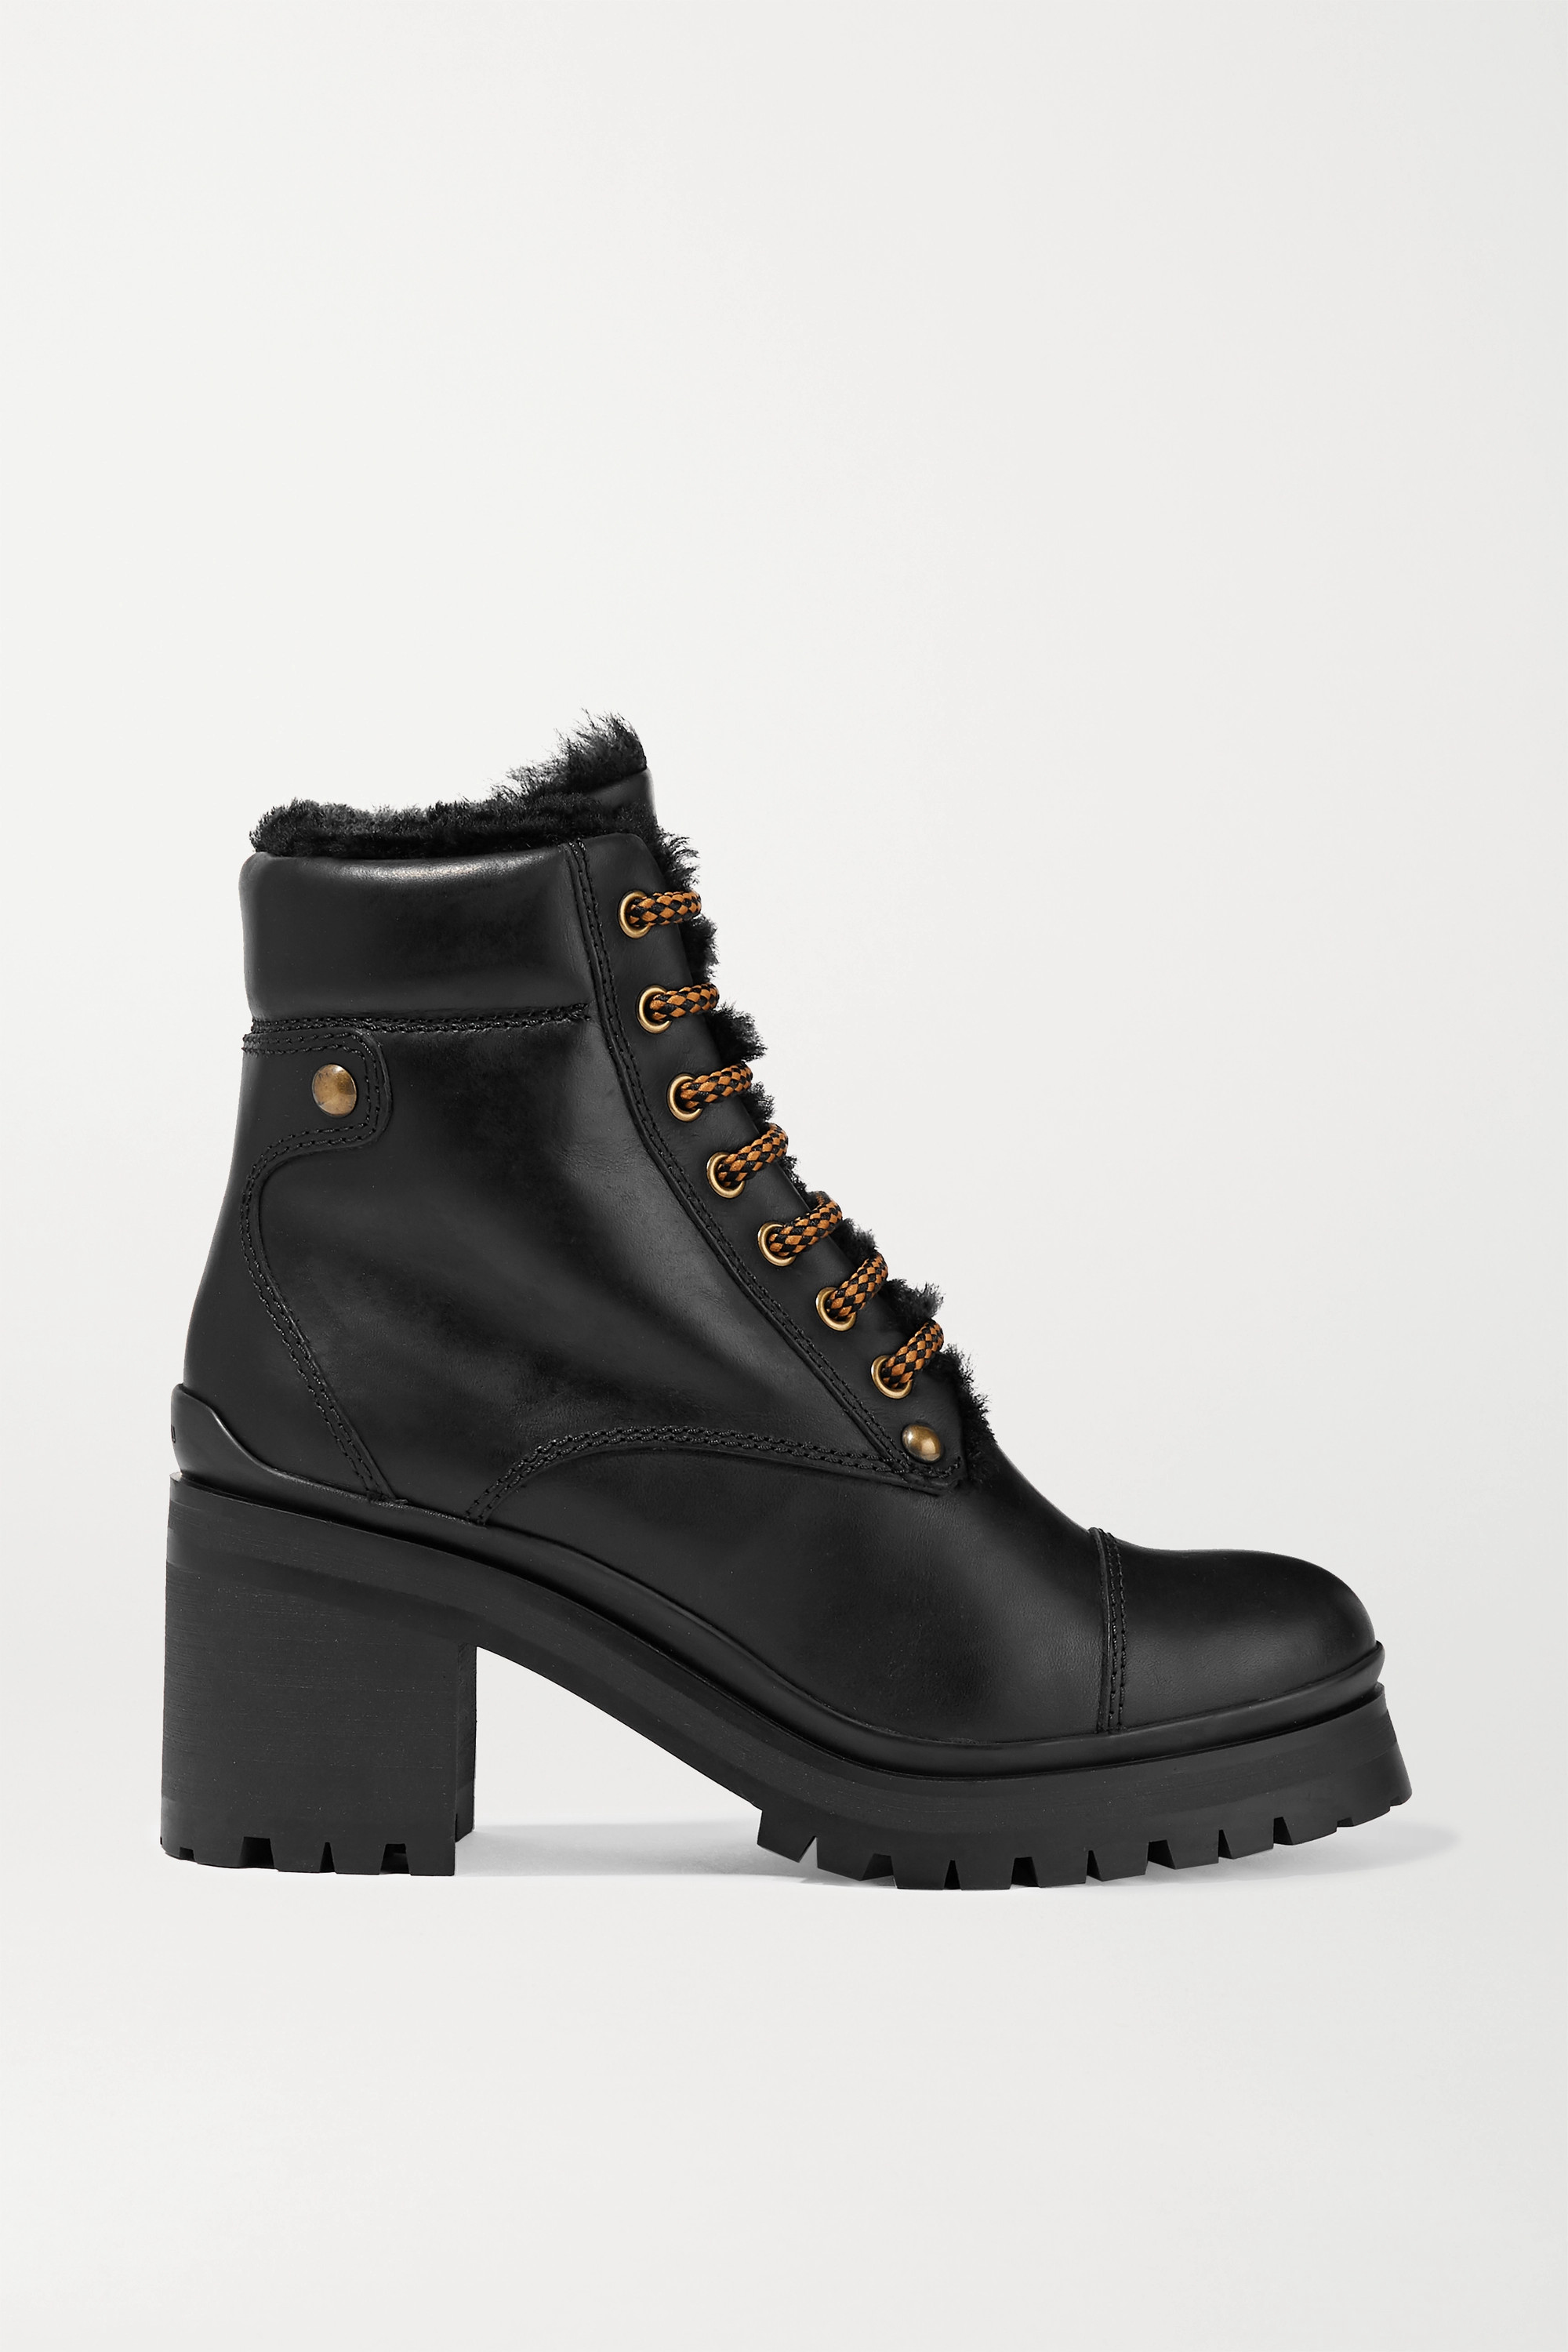 Miu Miu Shearling-lined leather ankle boots